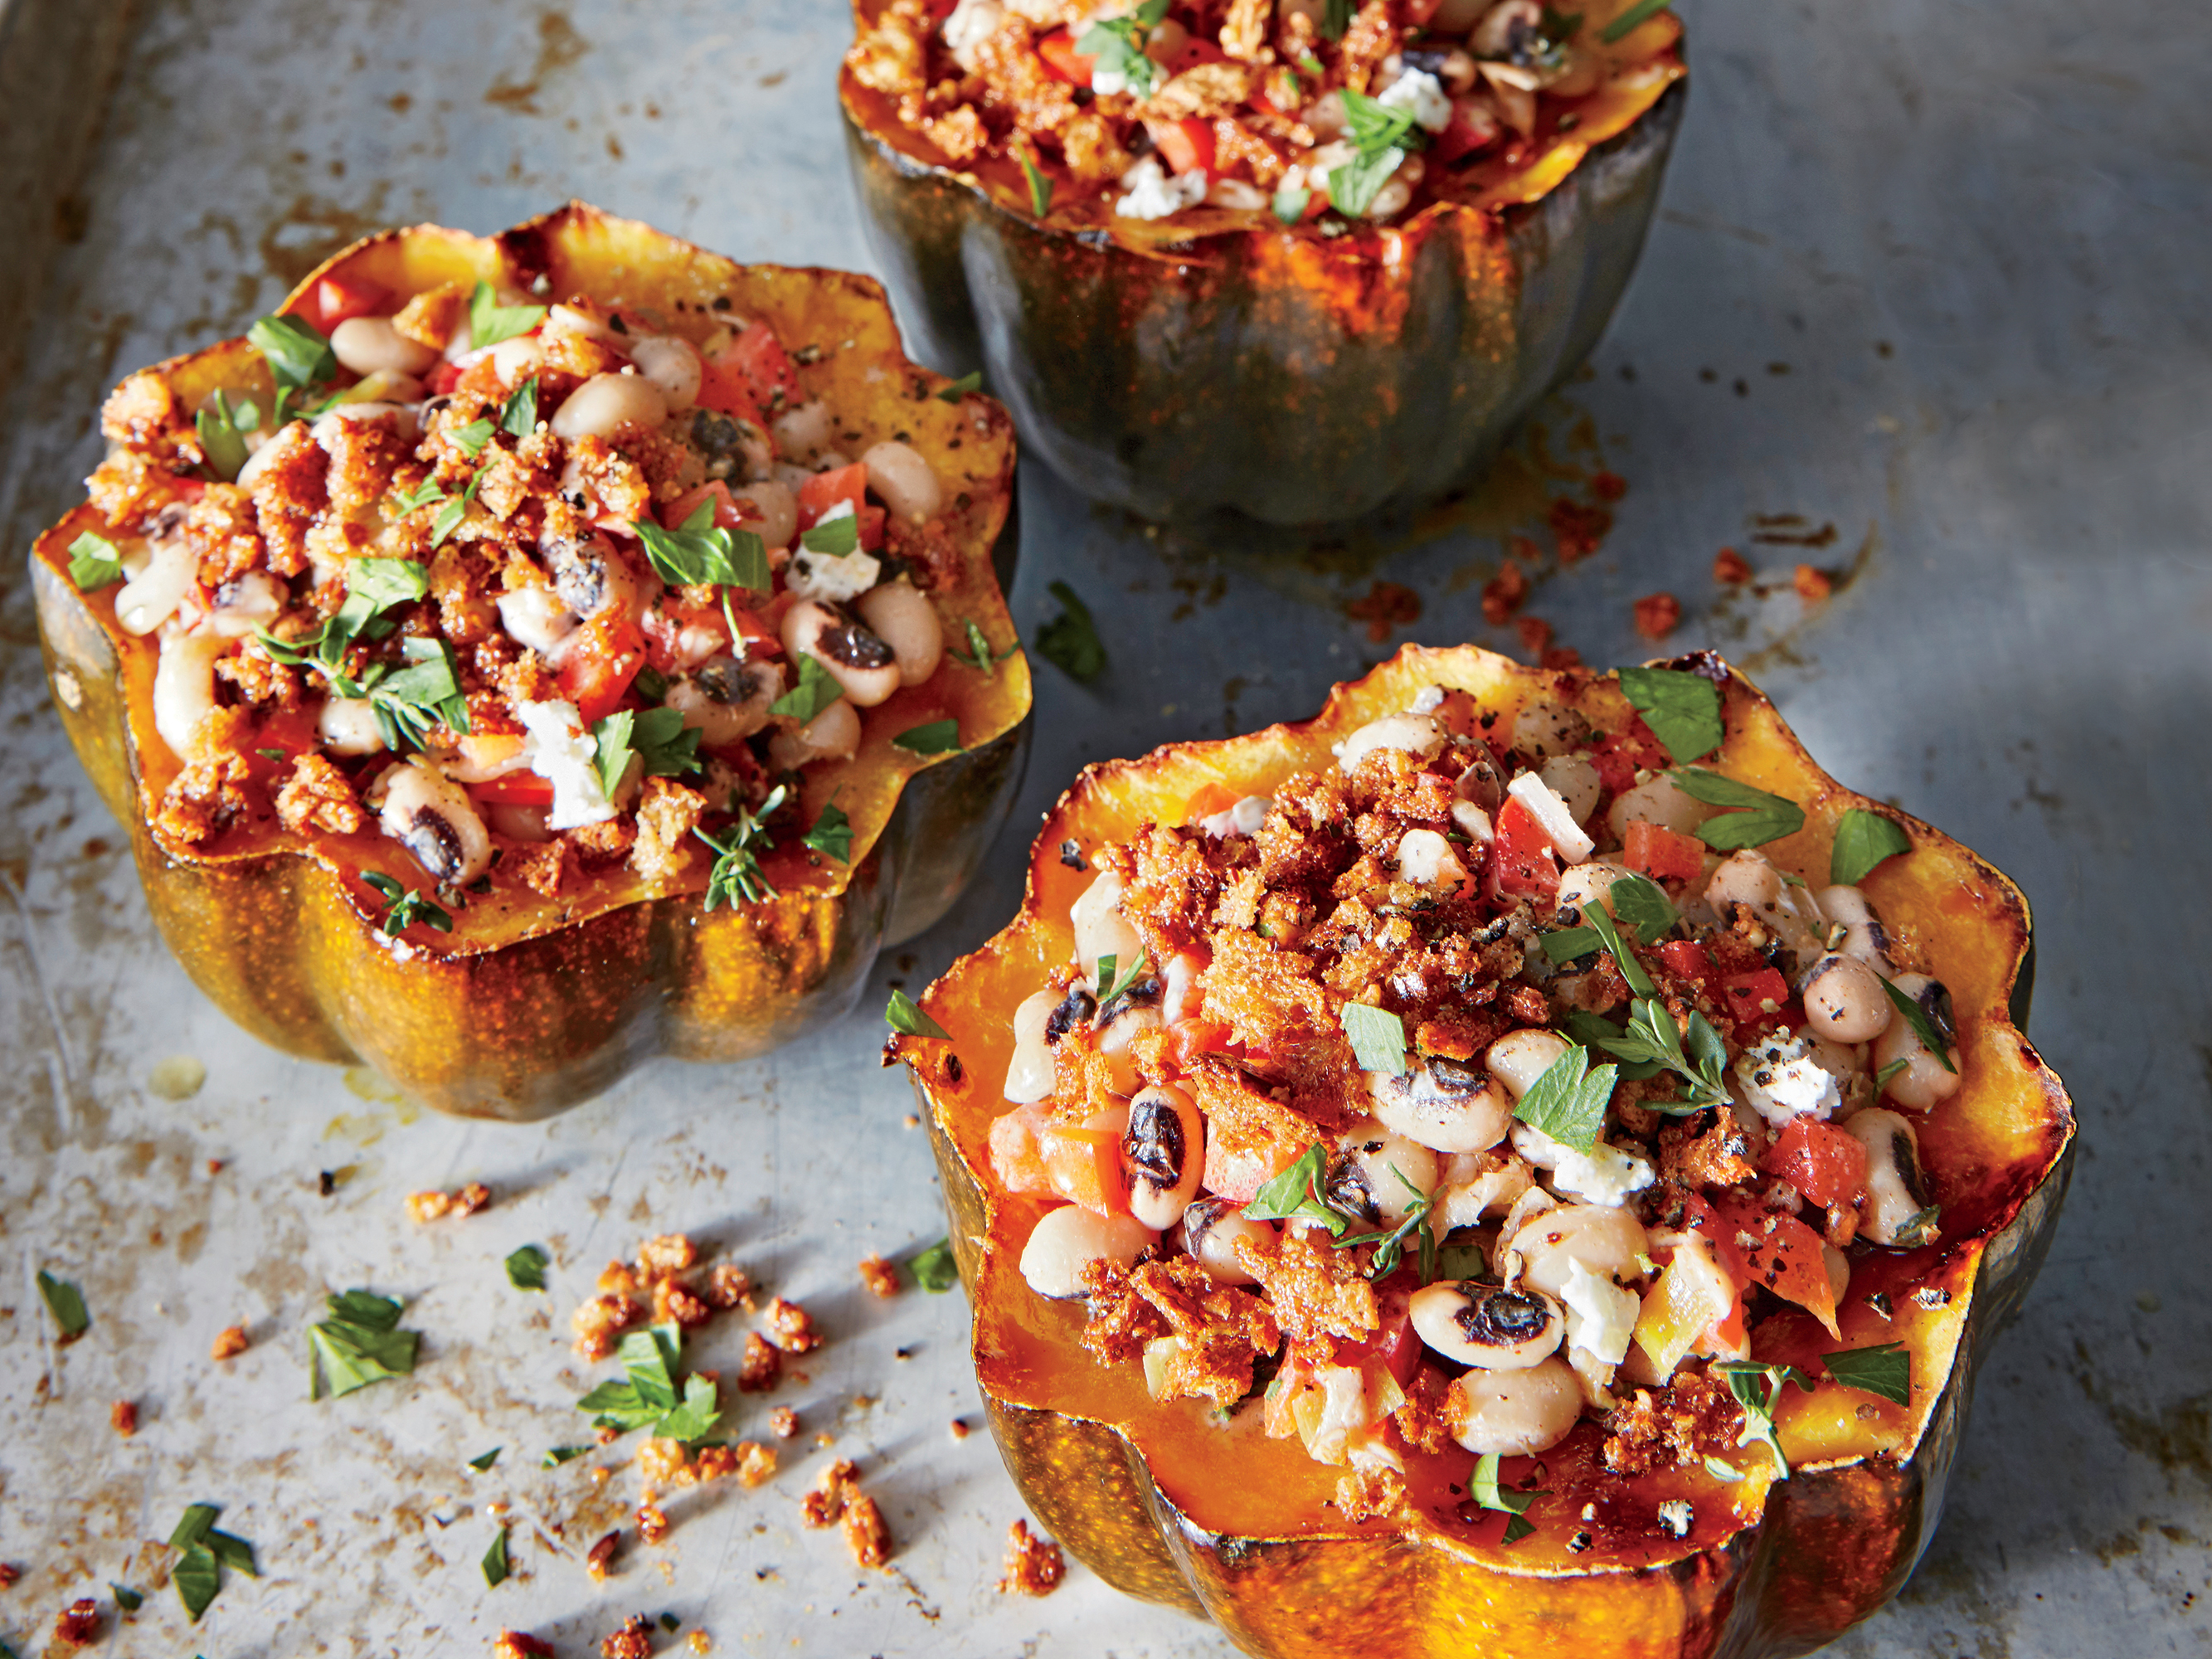 Black-Eyed-Pea-Stuffed Acorn Squash